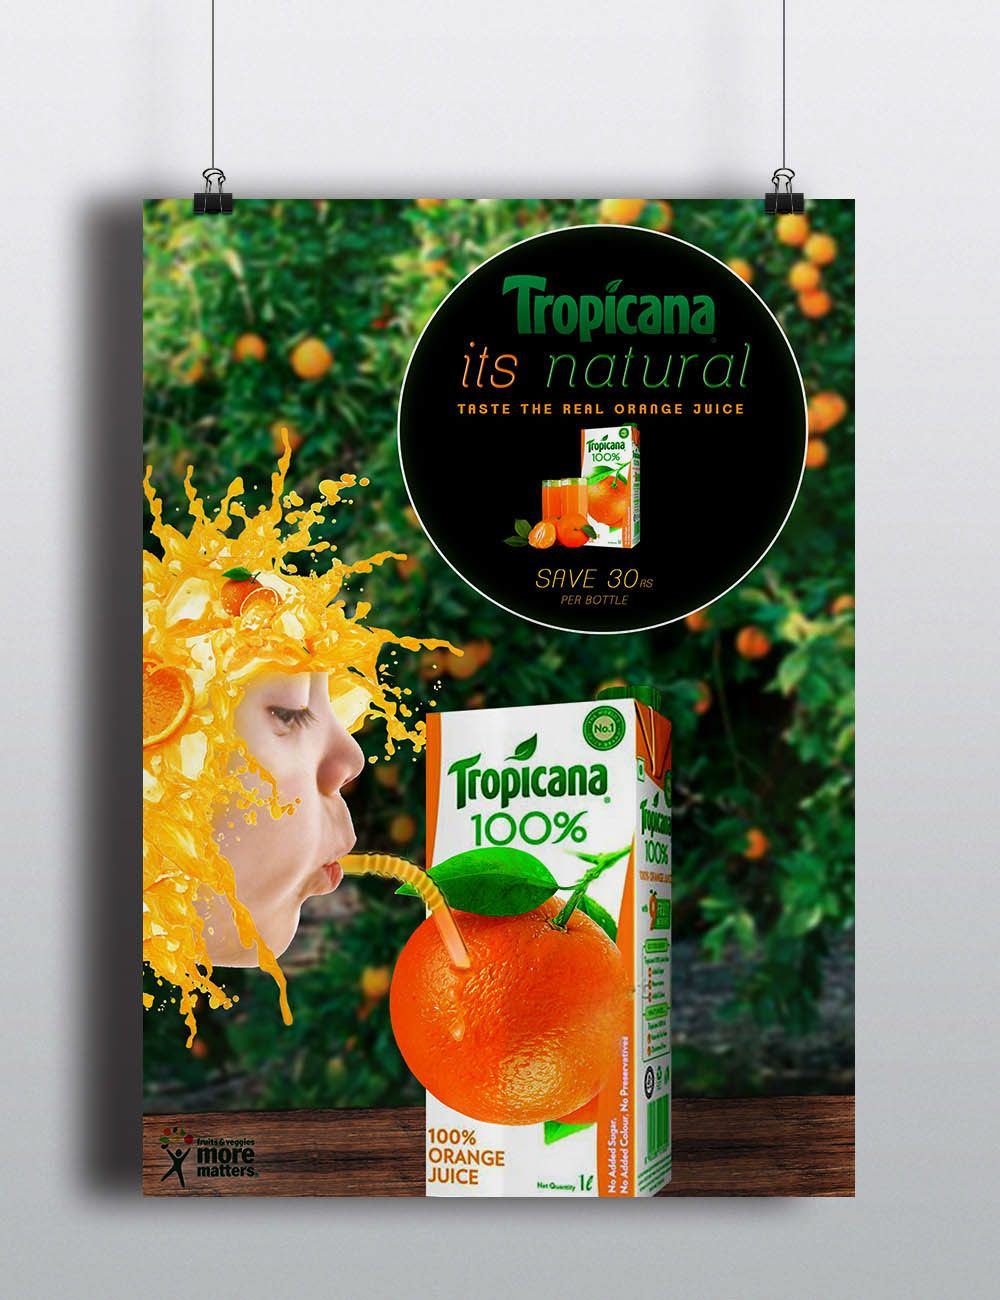 Check Out This Behance Project Tropicana Orange Juice Poster Https Www Behance Net Gallery 36268423 Tropicana Orange Juice P Tropicana Orange Juice Juice